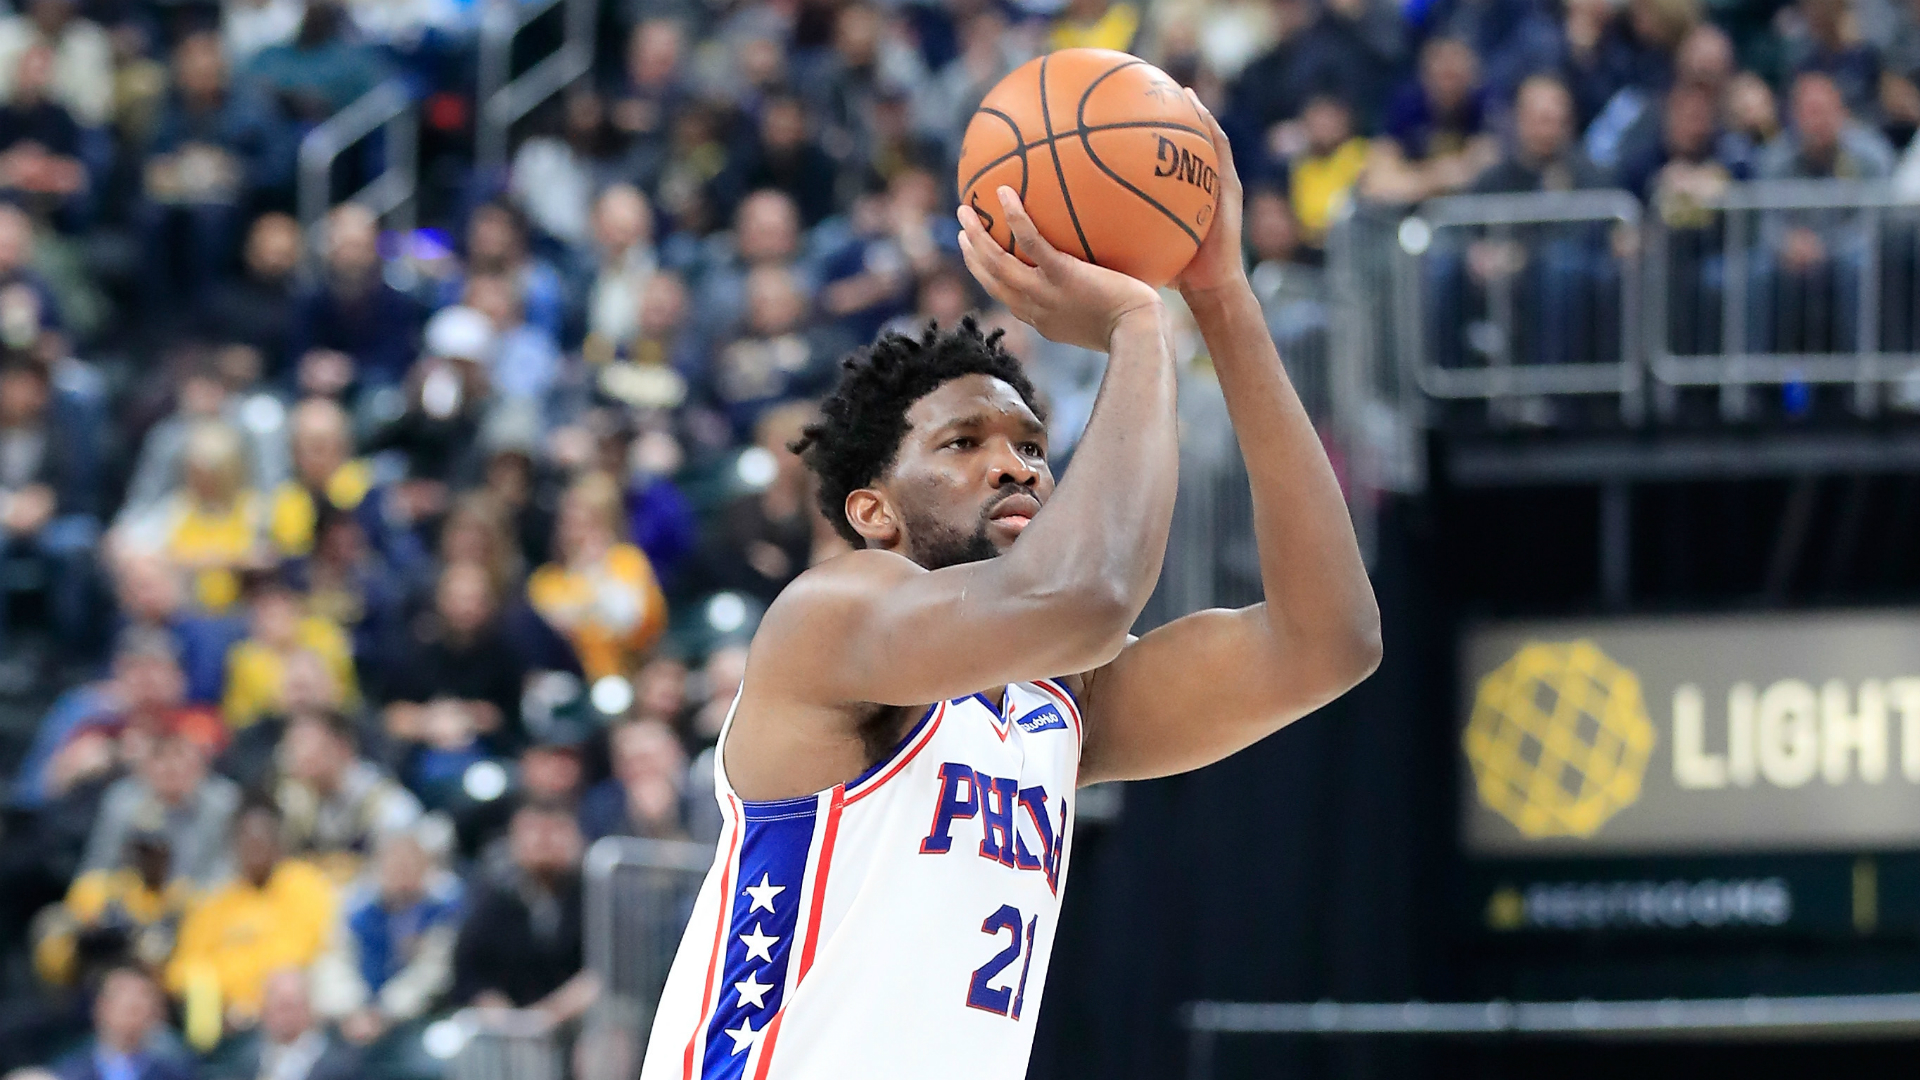 Joel Embiid injury update: 76ers star (knee) will not play in Game 3 vs. Nets